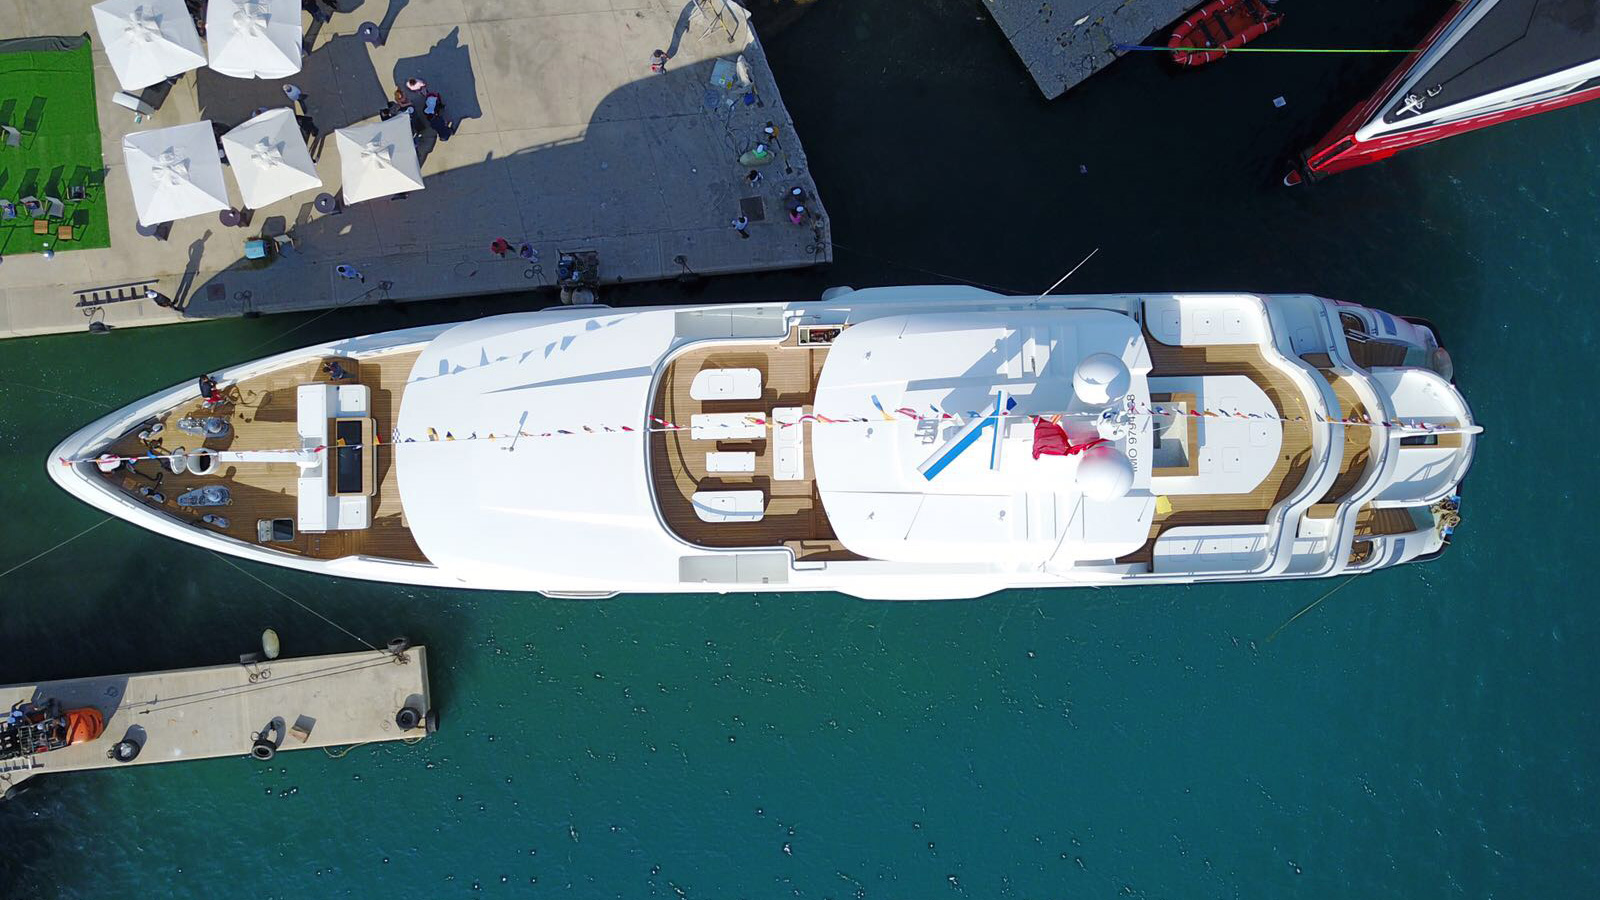 aerial-view-of-the-cmb-motor-yacht-liquid-sky